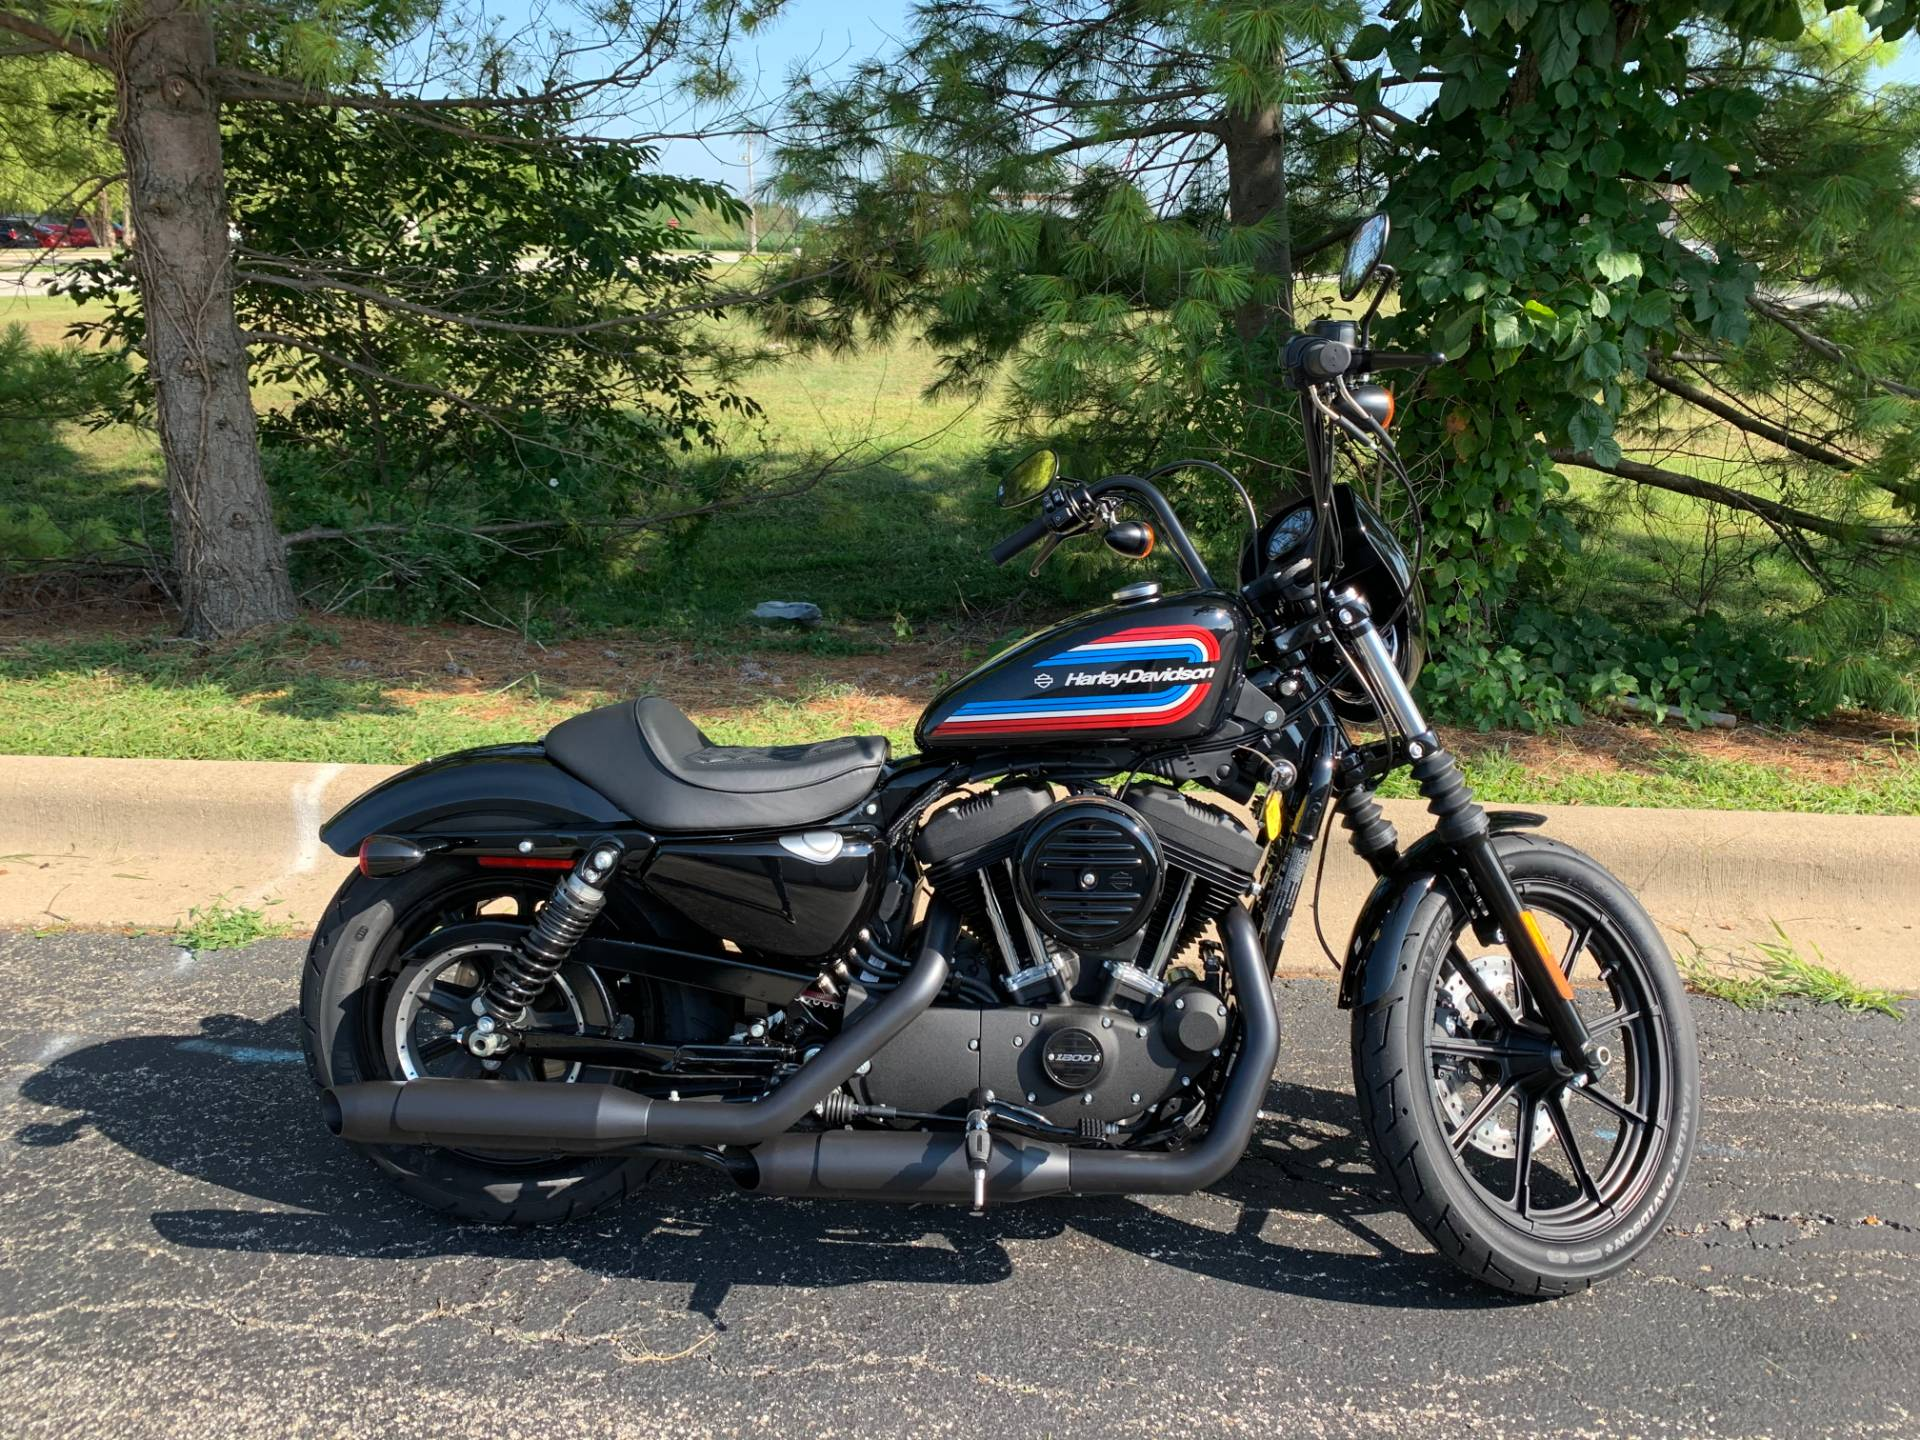 2020 Harley-Davidson Iron 1200 in Forsyth, Illinois - Photo 1